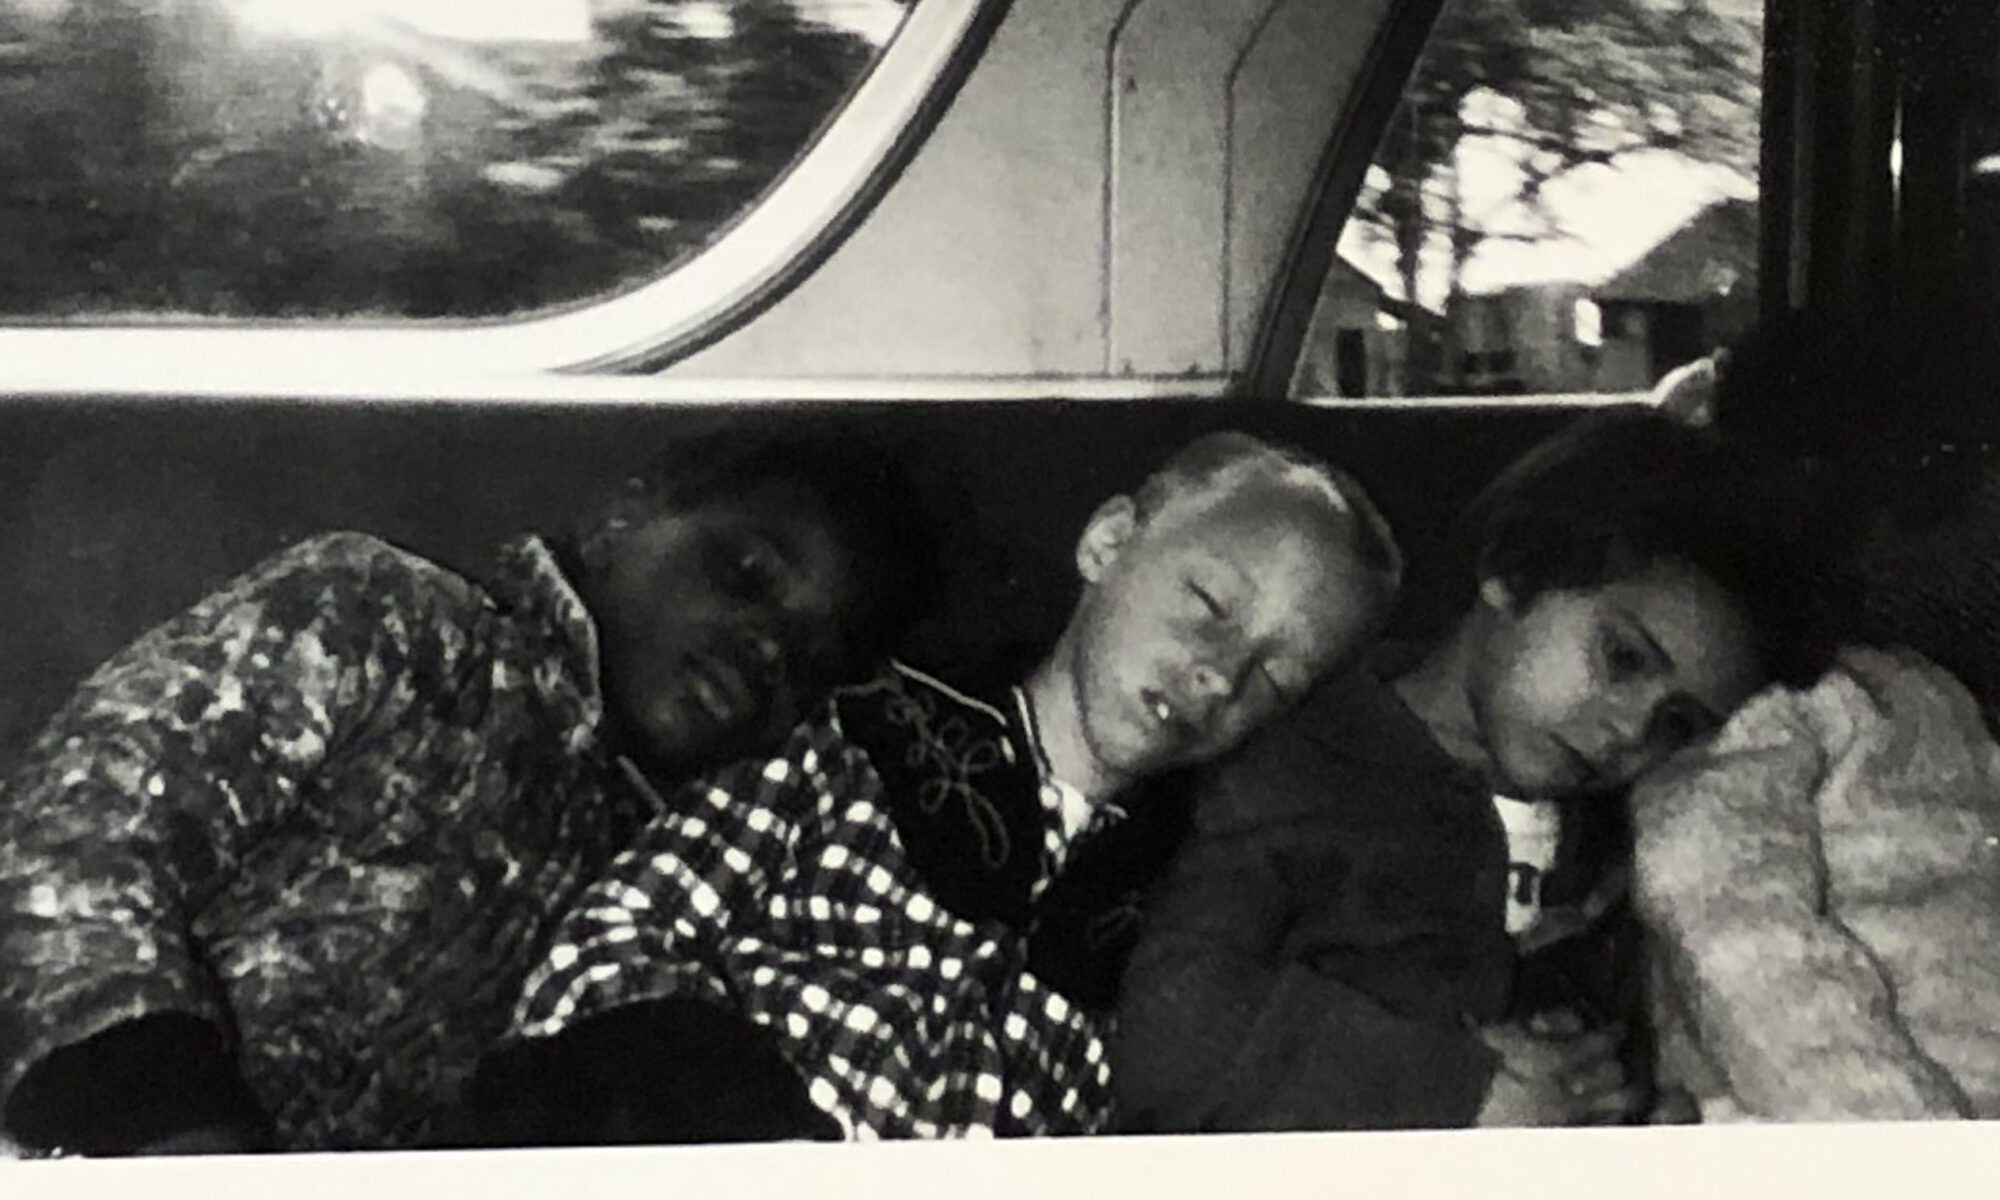 Four children, two white and two Black, lean on each on a bus bench. Three of the four children are sleeping